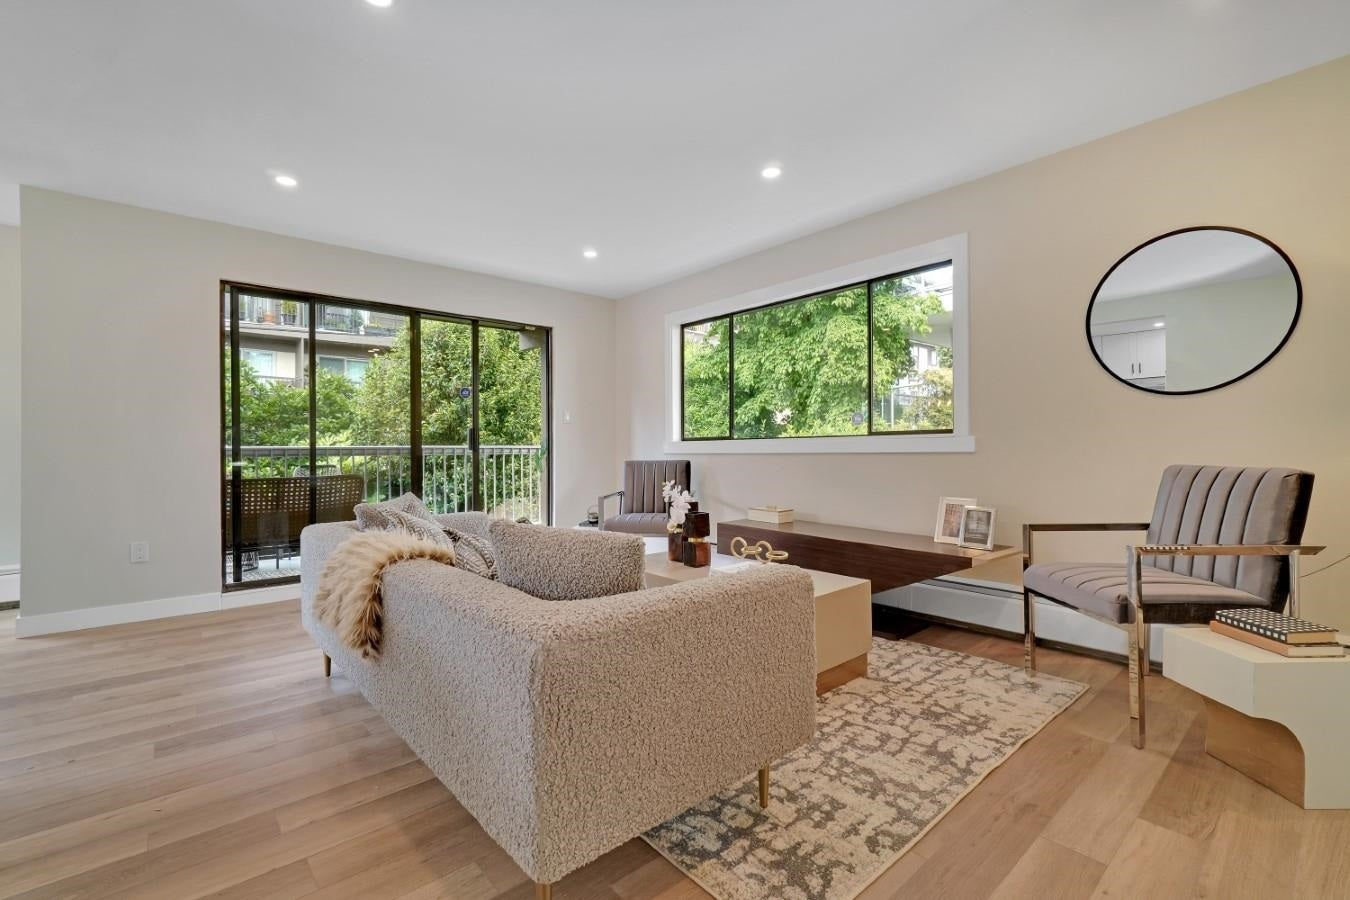 206 330 W 2ND STREET - Lower Lonsdale Apartment/Condo for sale, 2 Bedrooms (R2604160) - #8